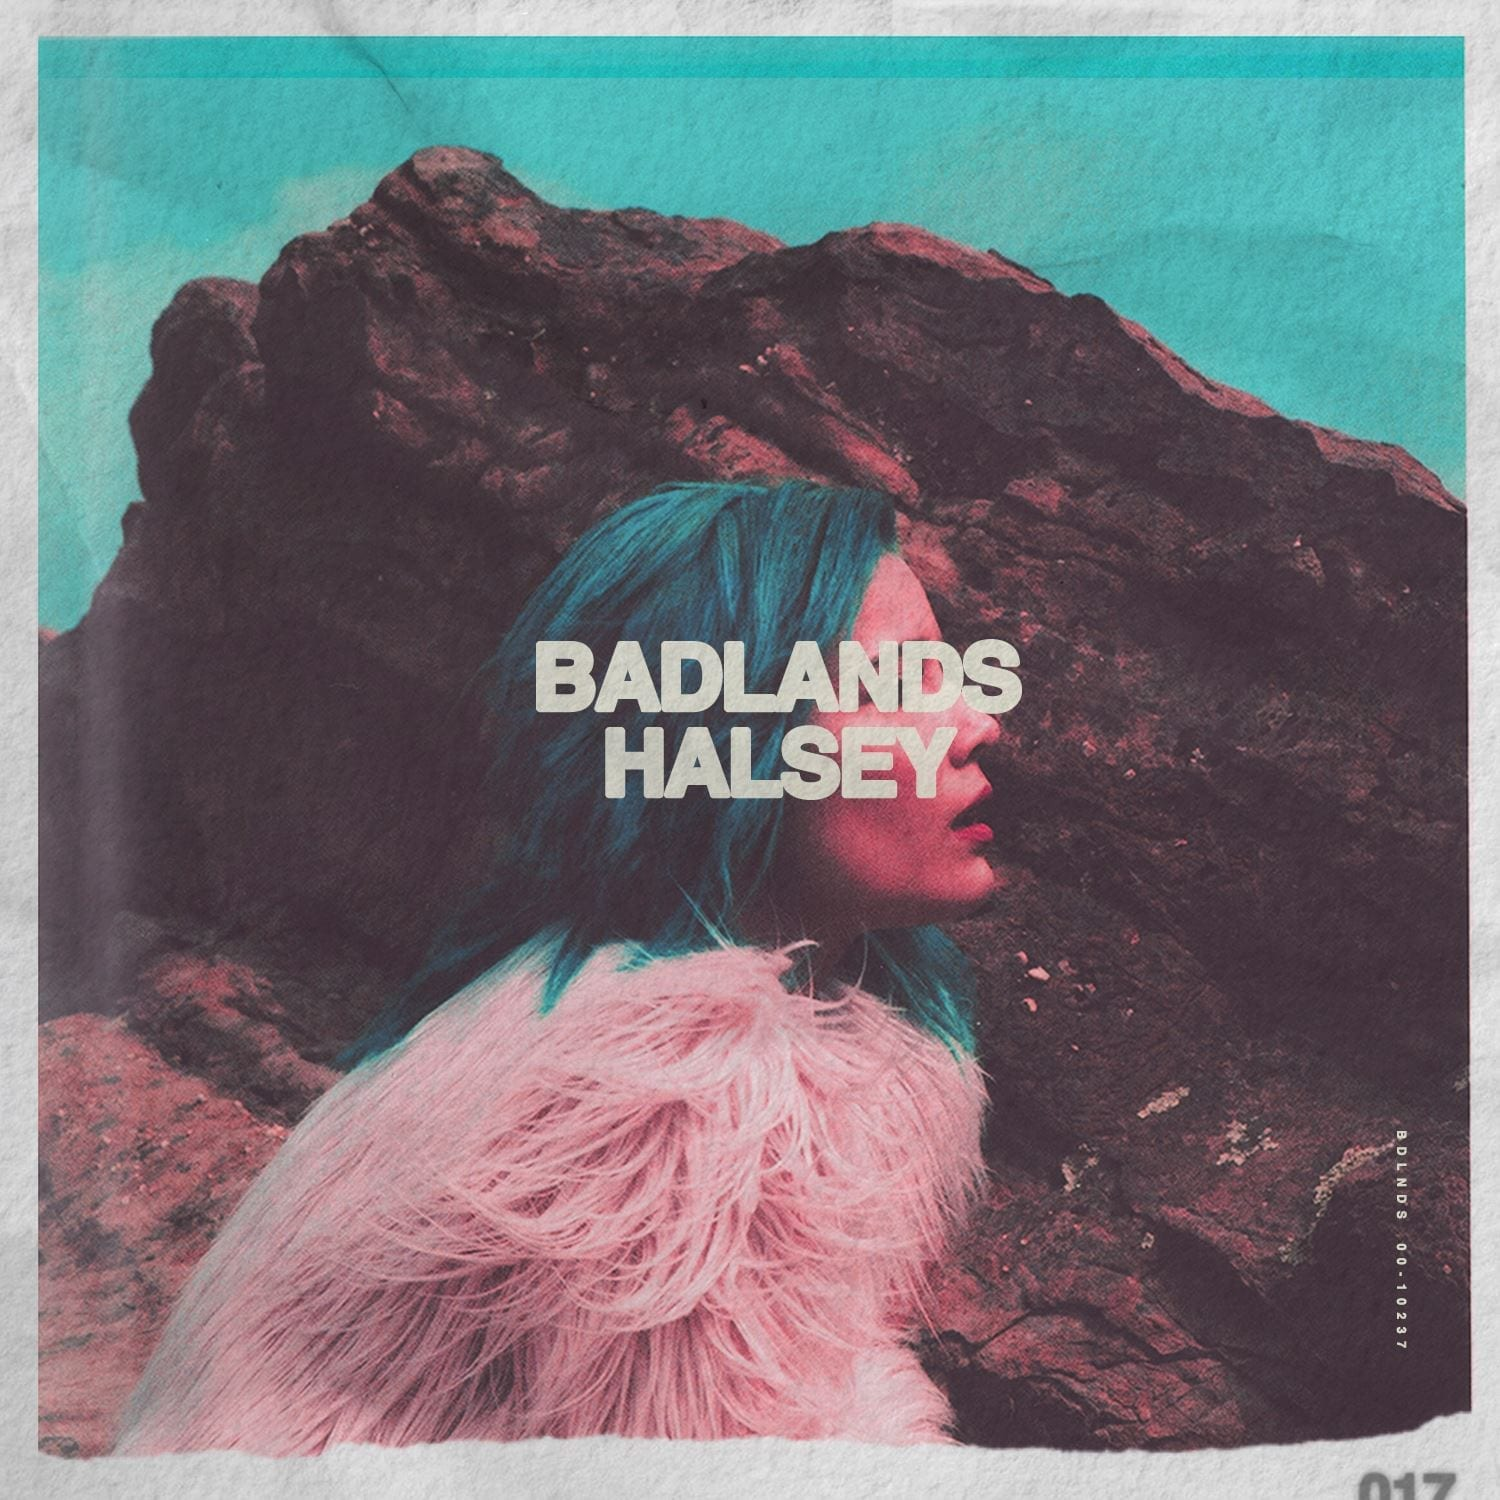 Song of the Week (30th August): Is There Somewhere // Halsey